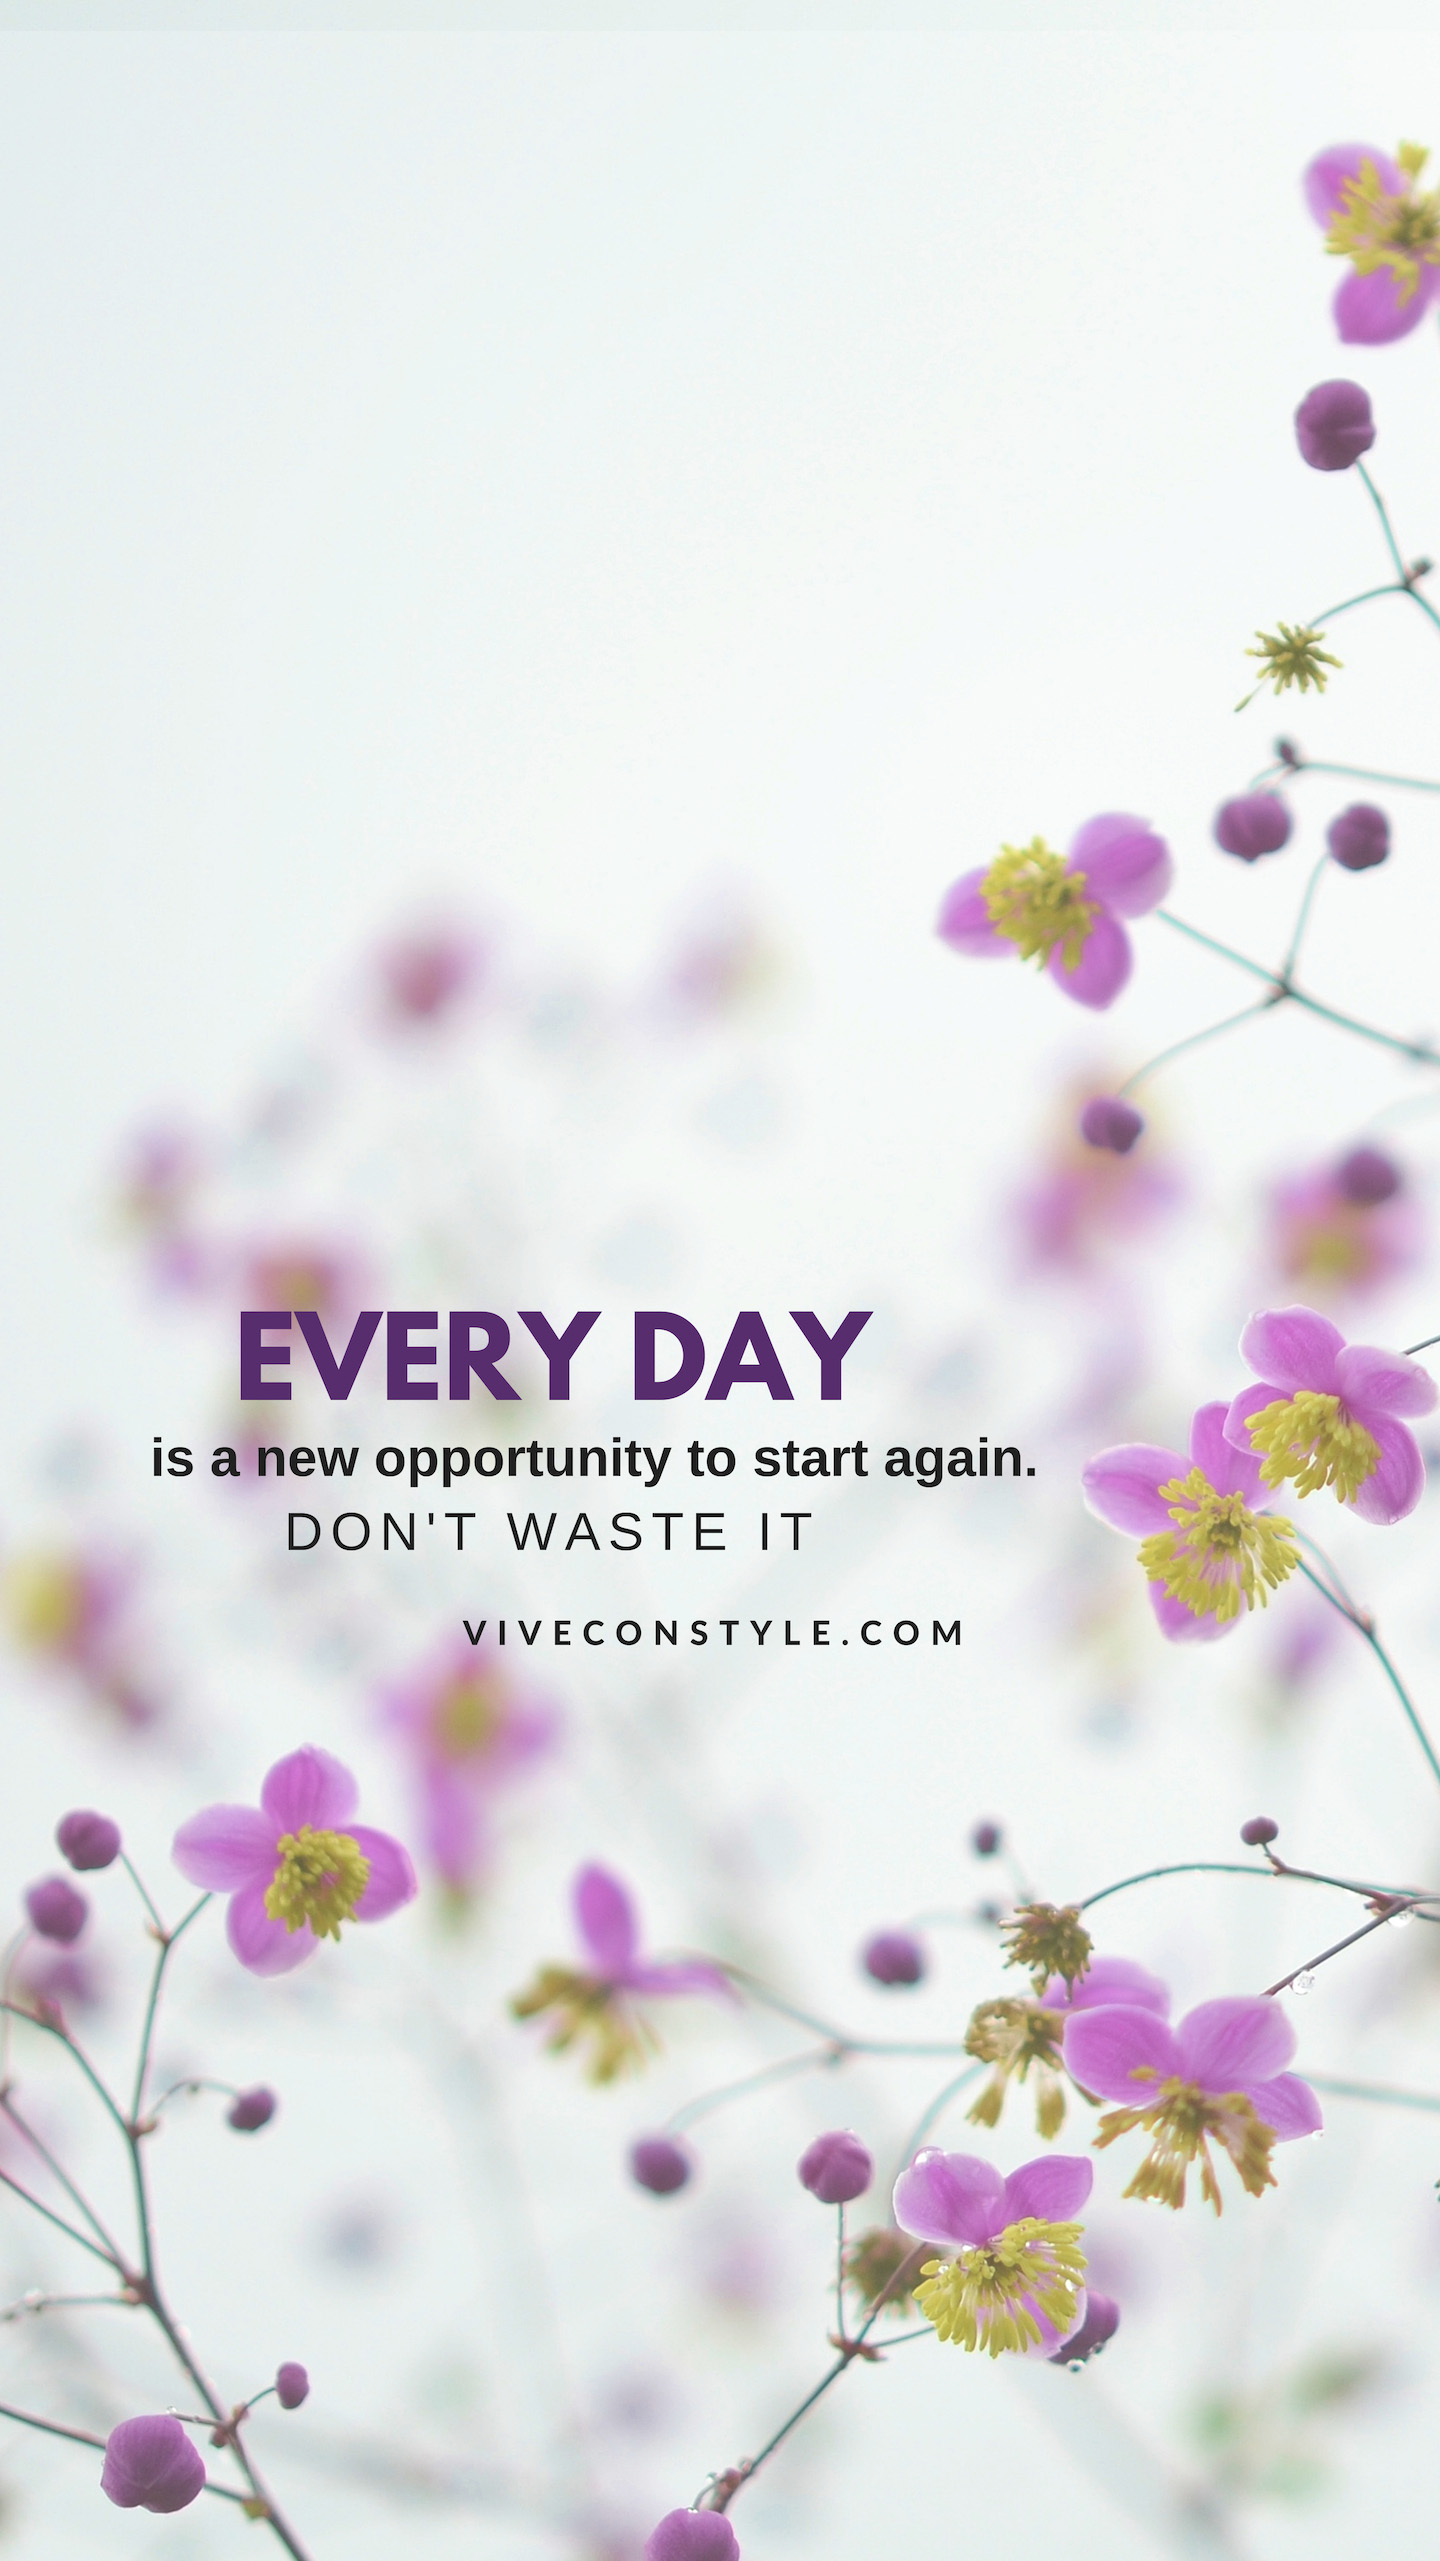 Every day is a new opportunity